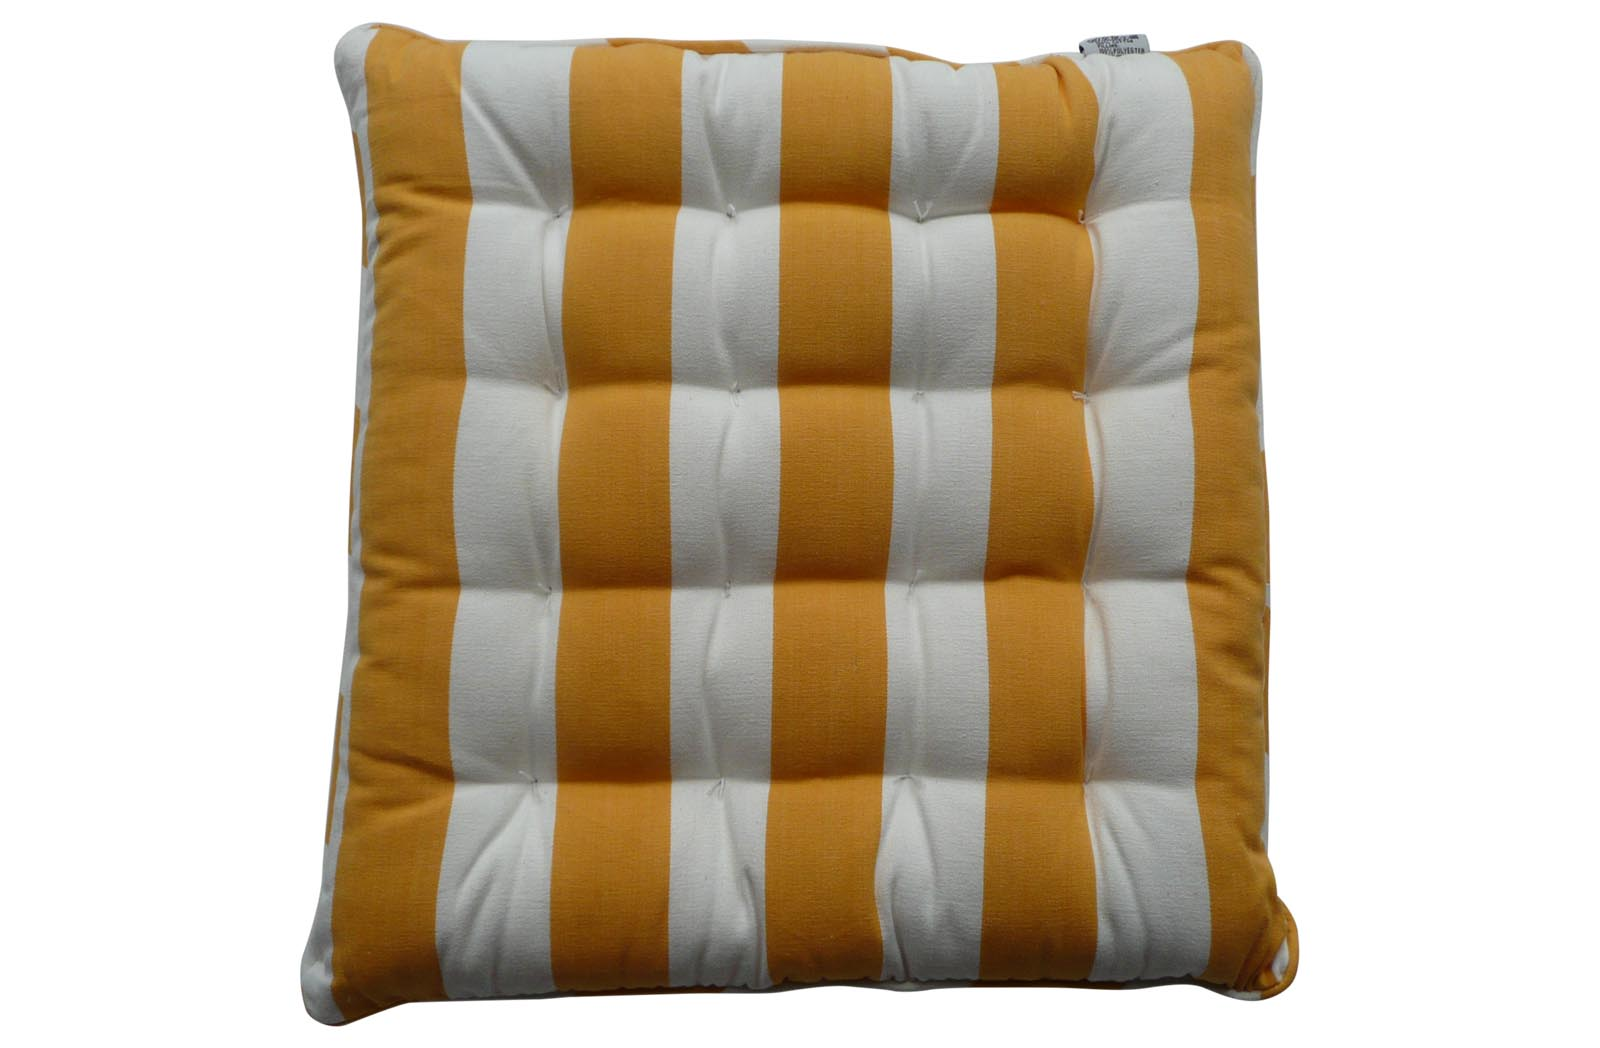 Striped Seat Pads with Piping yellow, white